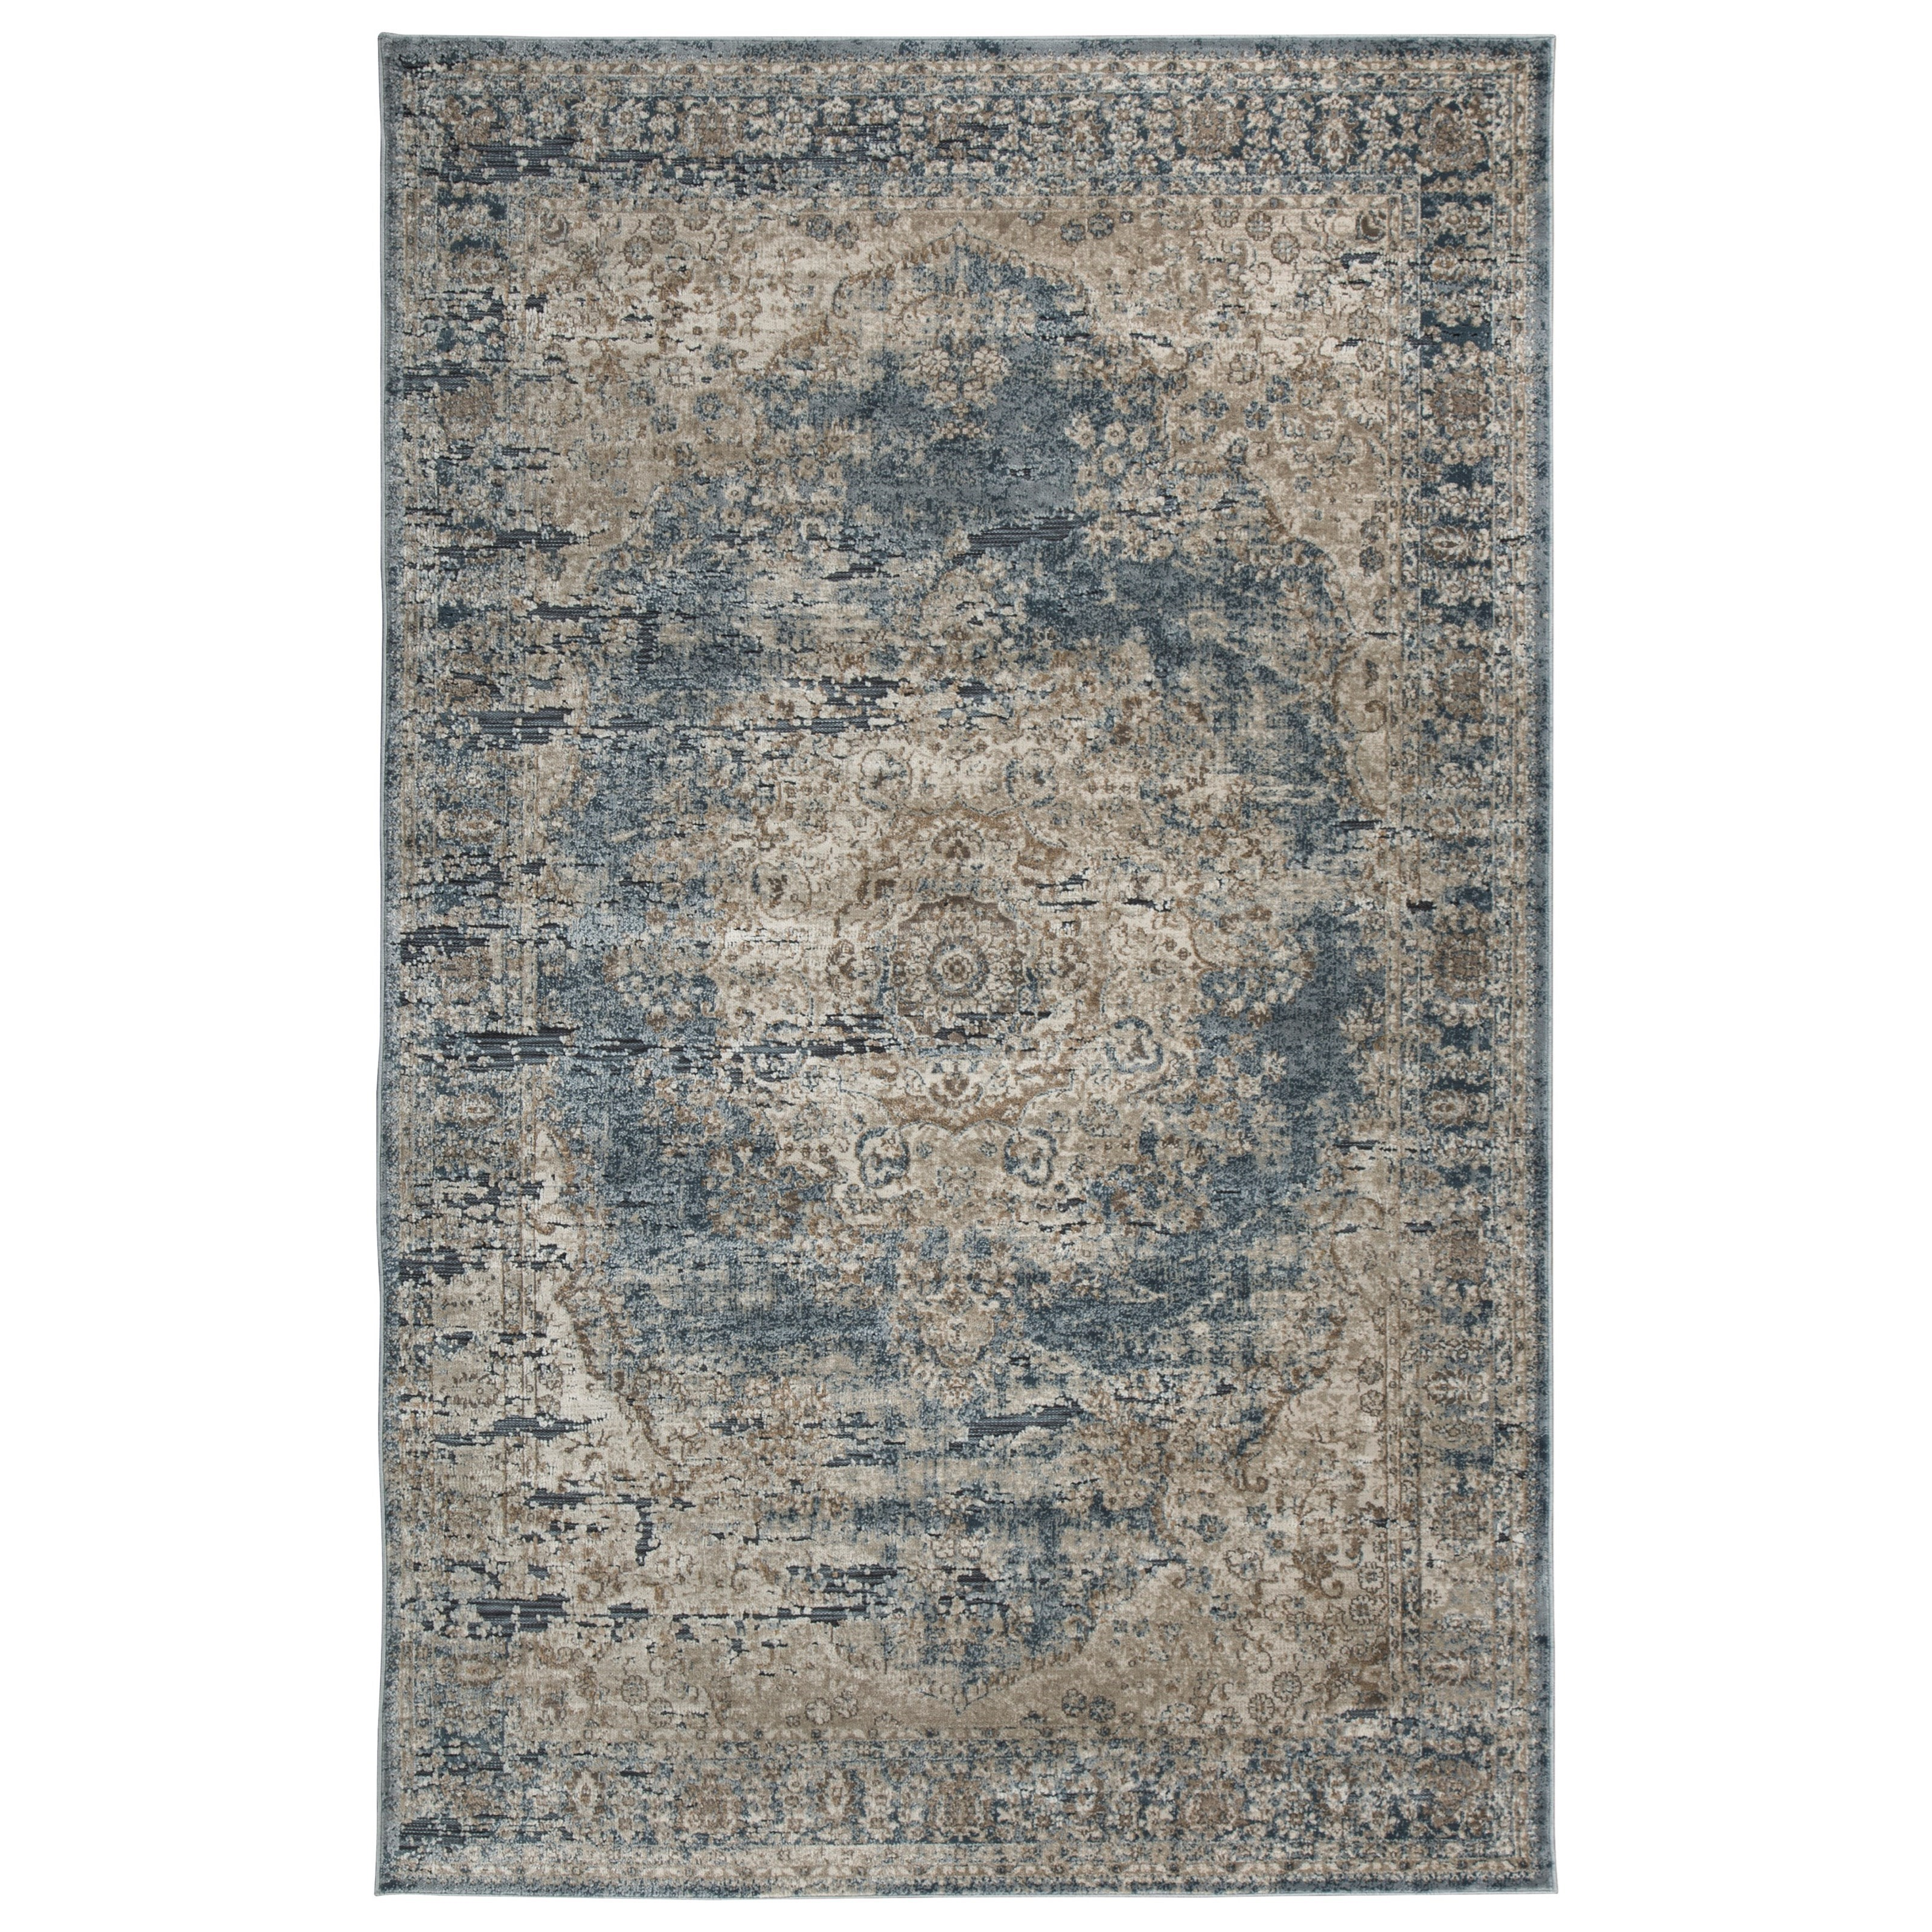 Traditional Classics Area Rugs South Blue/Tan Medium Rug by Ashley at Morris Home